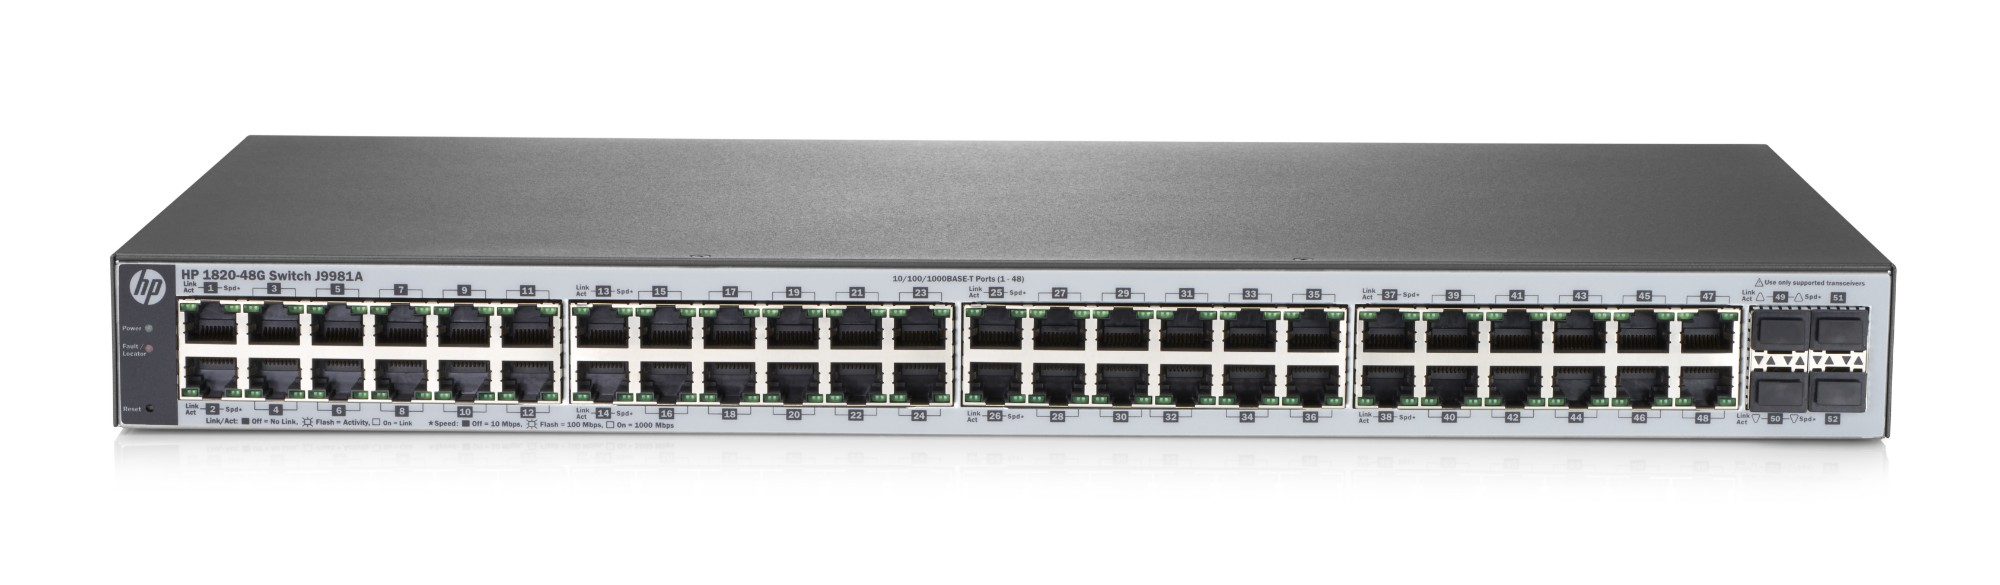 Hewlett Packard Enterprise 1820-48G Managed L2 Gigabit Ethernet (10/100/1000) 1U Grey